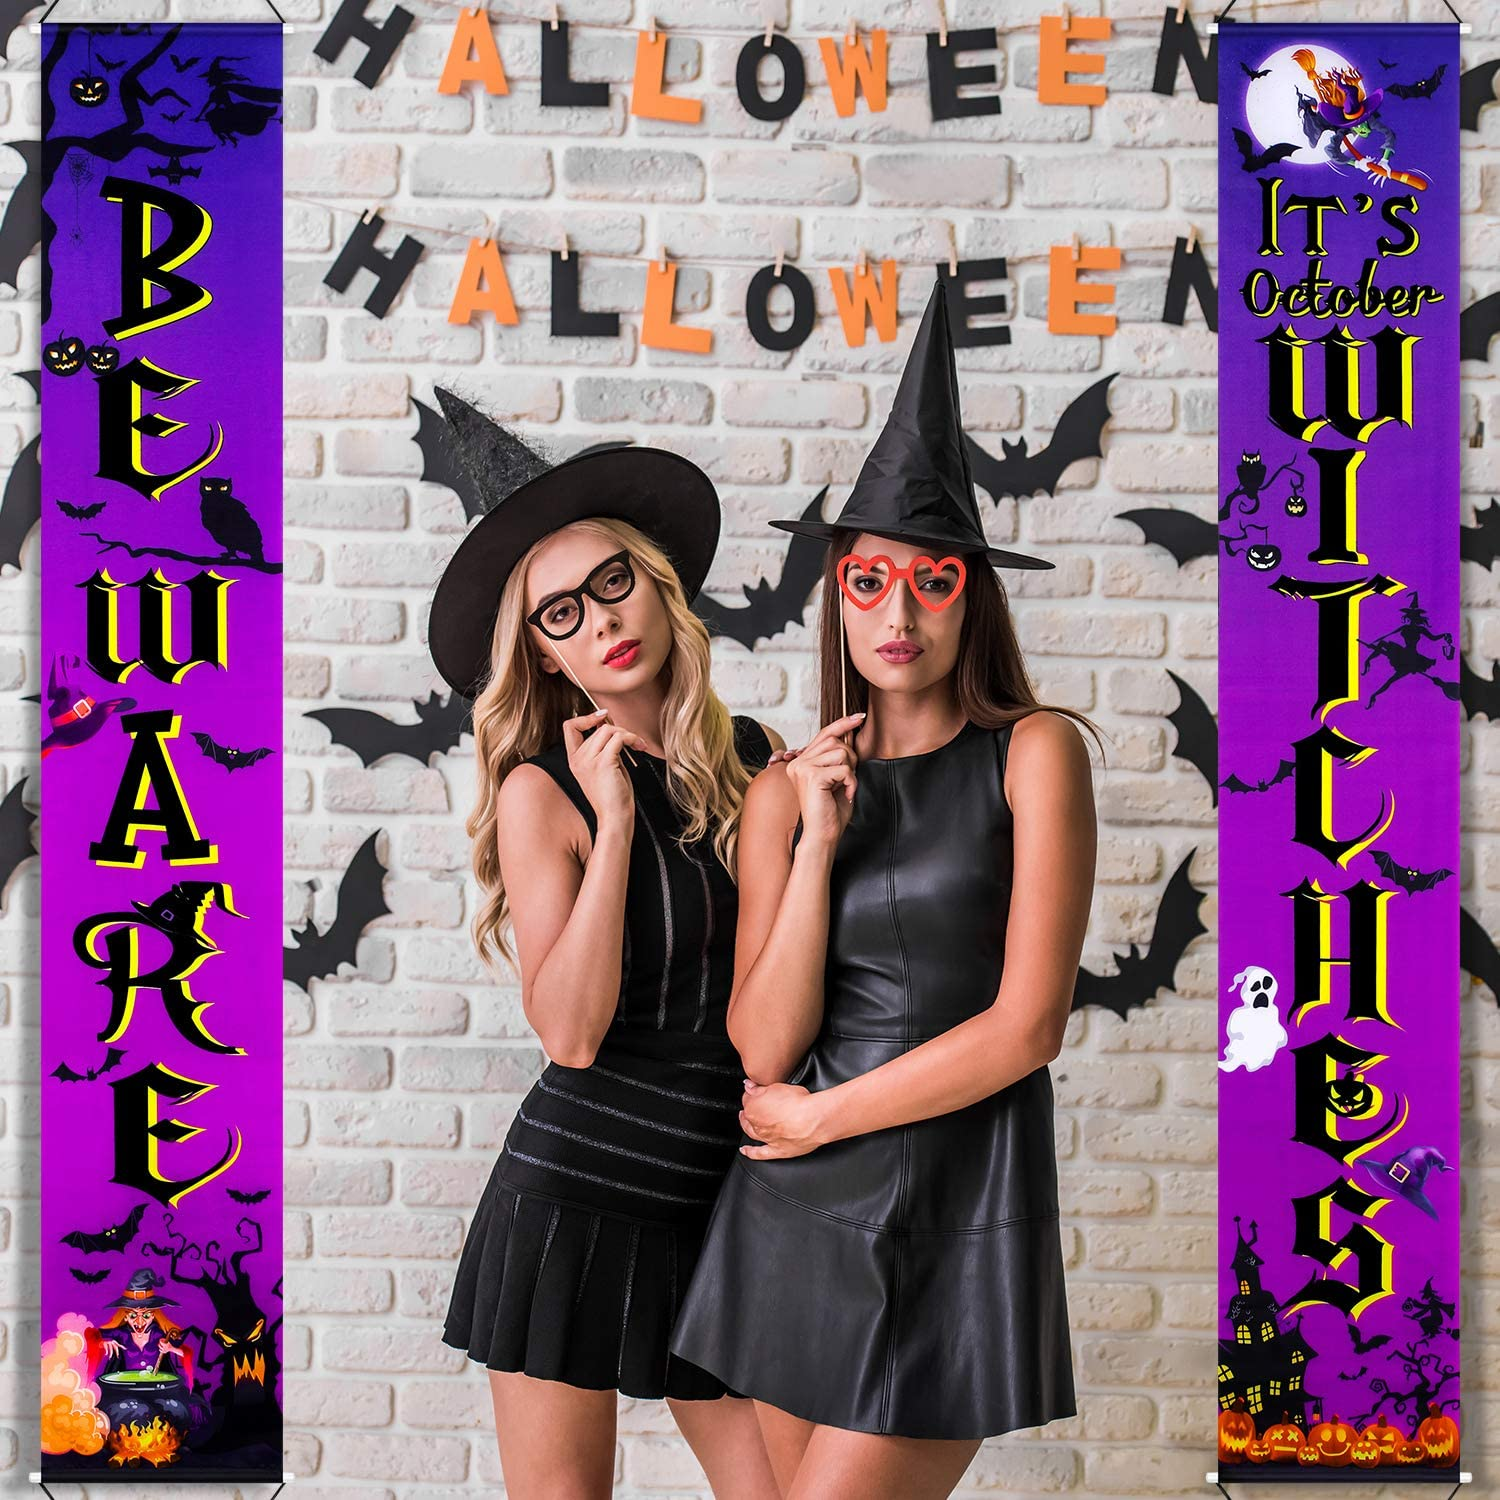 Halloween Party Decorations Witches Banner It's October Witches Wizard Party Favor, Halloween Backdrop Witches Door Sign Decor Banner for Halloween Decorations Background Photo Props